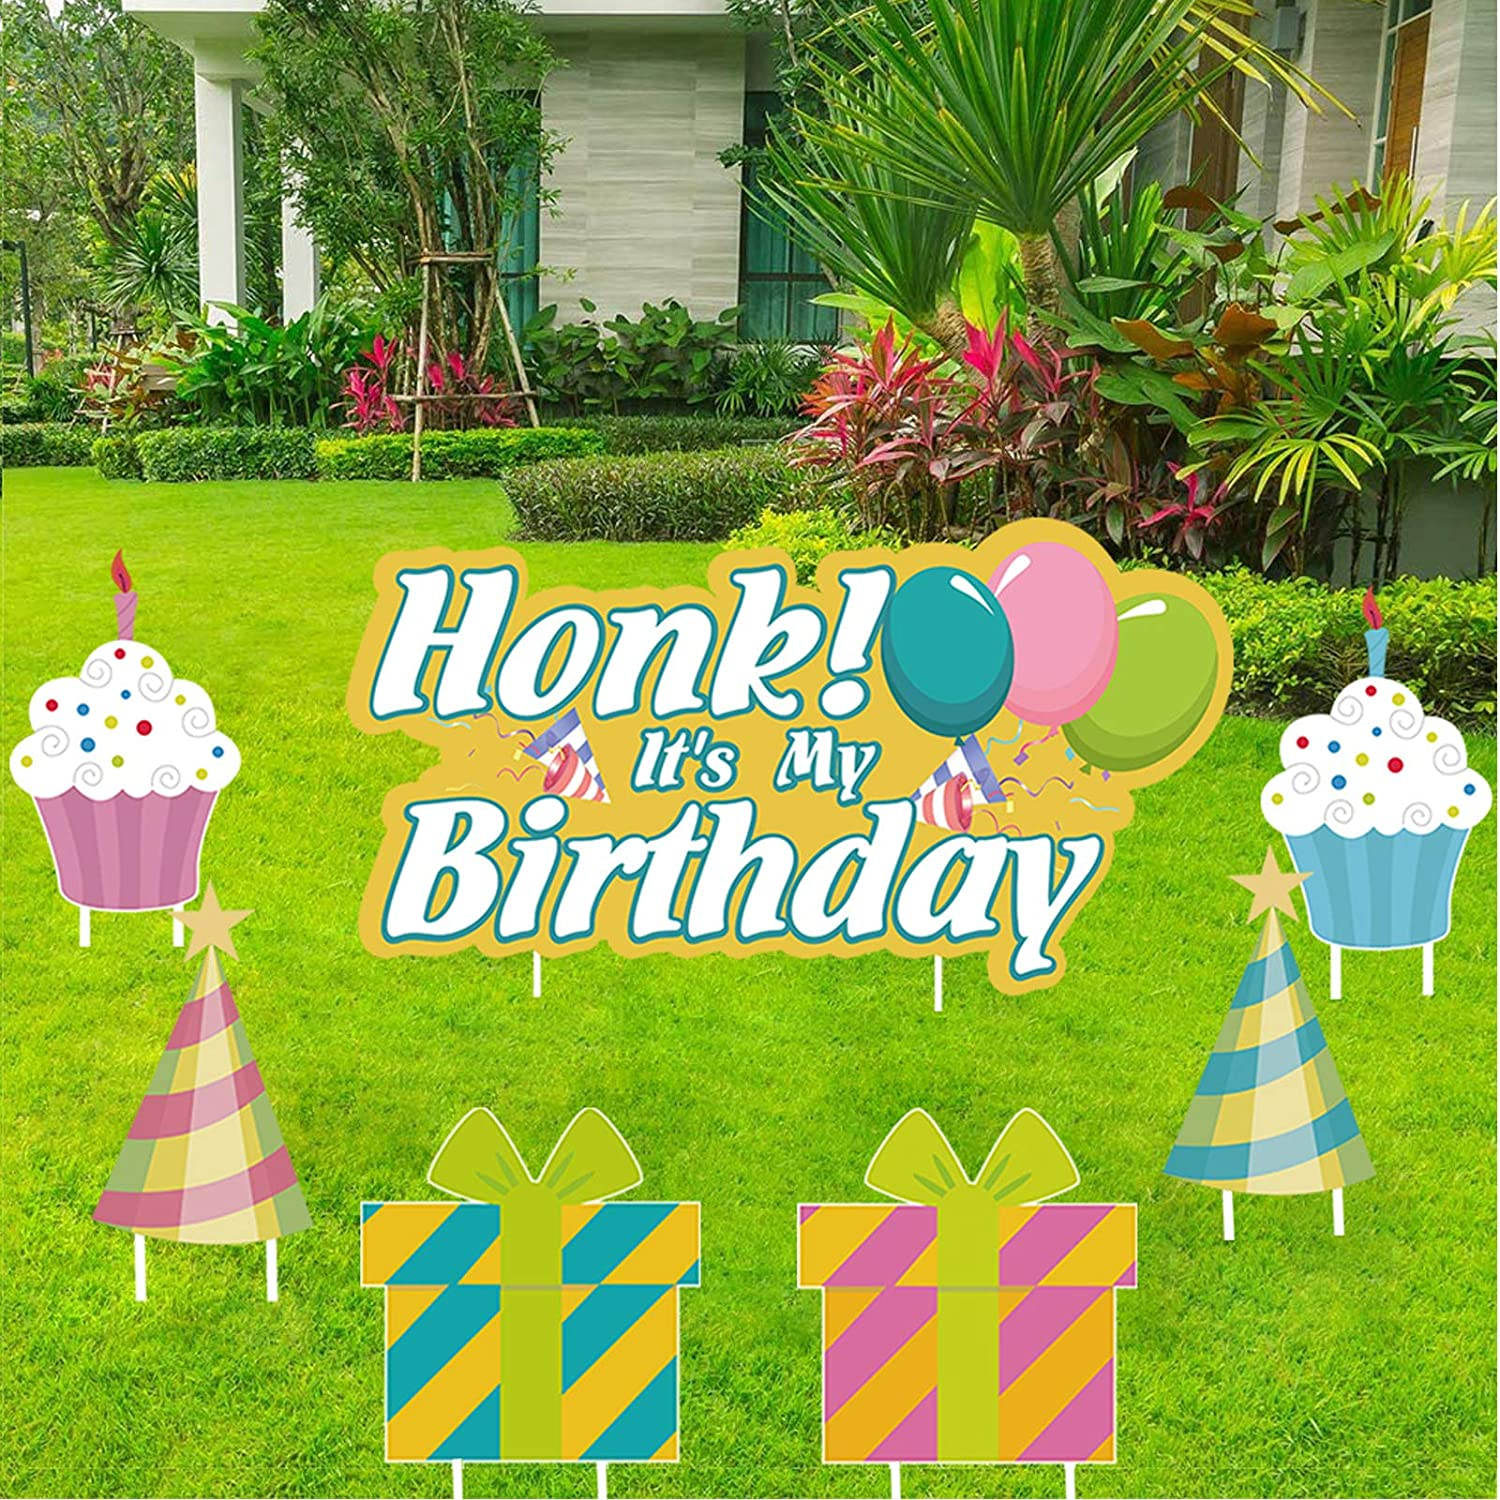 Choies Happy Birthday Lawn Sign Outdoor HONK It's My Birthday Sign Yard with Stake Outdoor Lawn Garden Decor Birthday Party Yard Signs